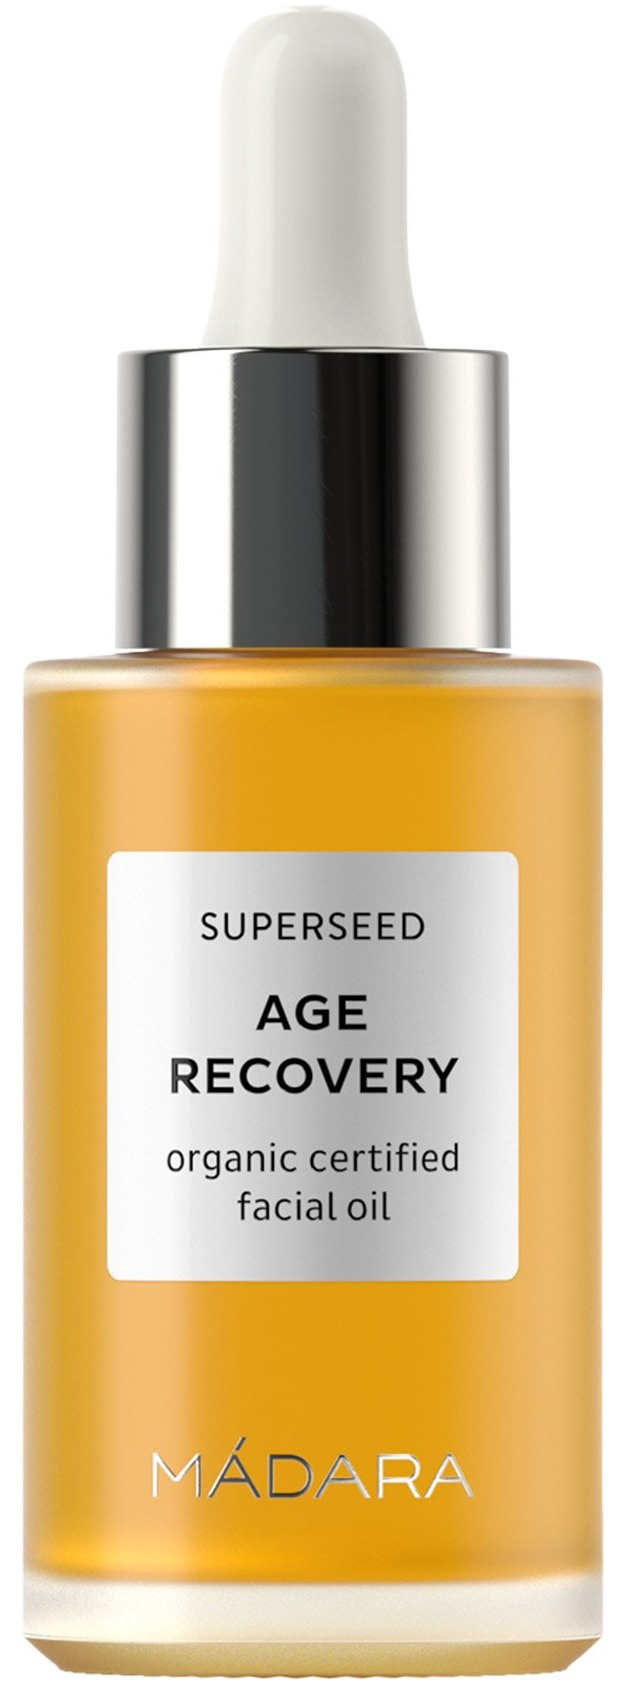 Madara Cosmetics Superseed Age Recovery Facial Oil